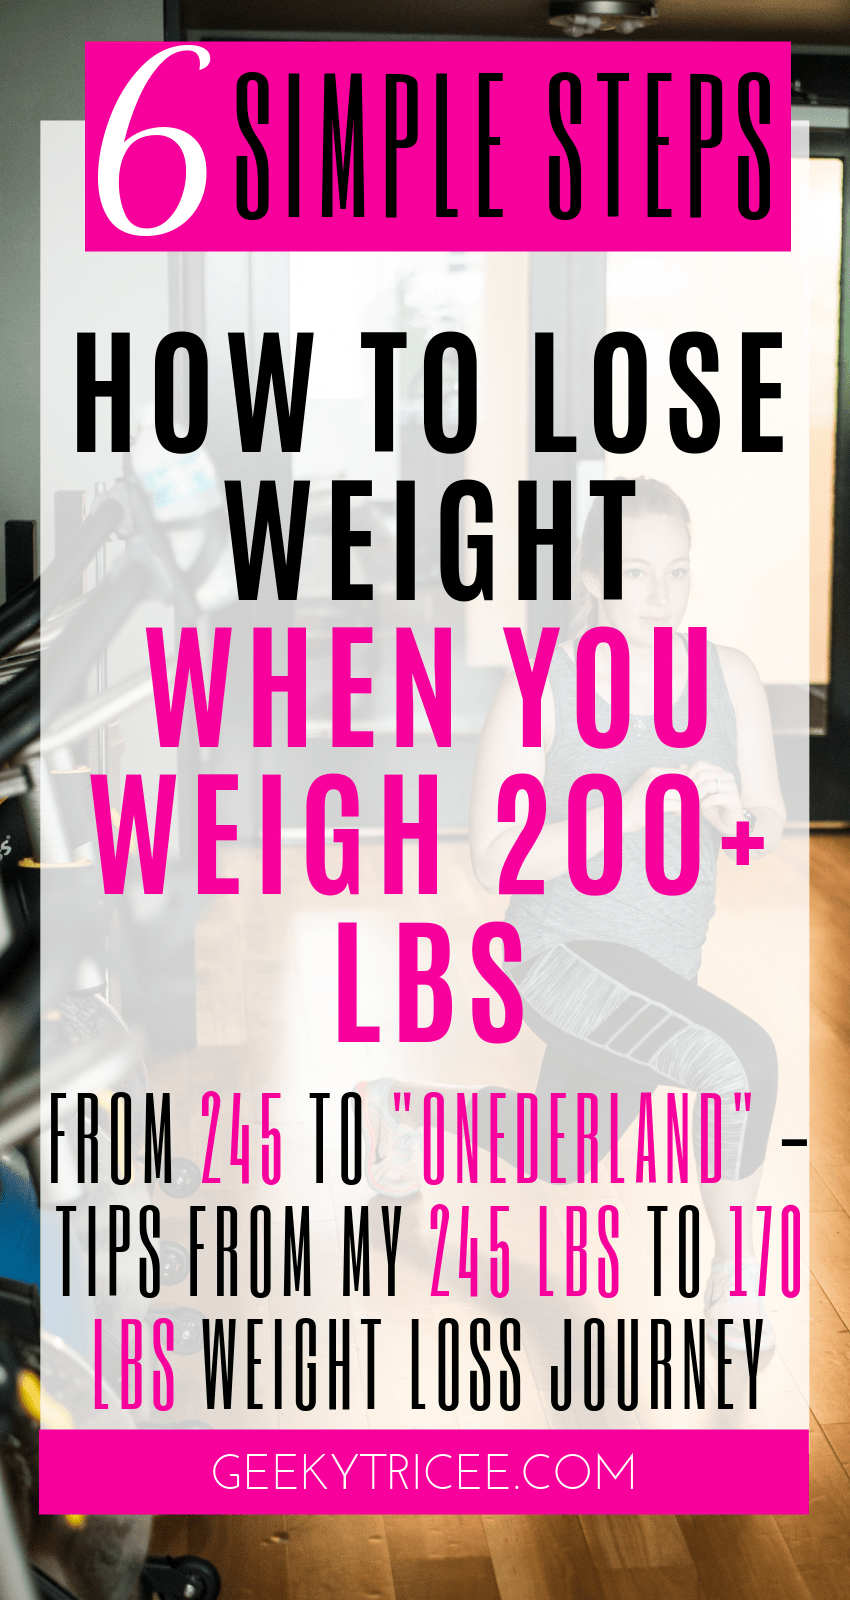 Fast weight loss easy tips #easyweightloss :) | very quick ways to lose weight#lifestyle #lowcarb #goals